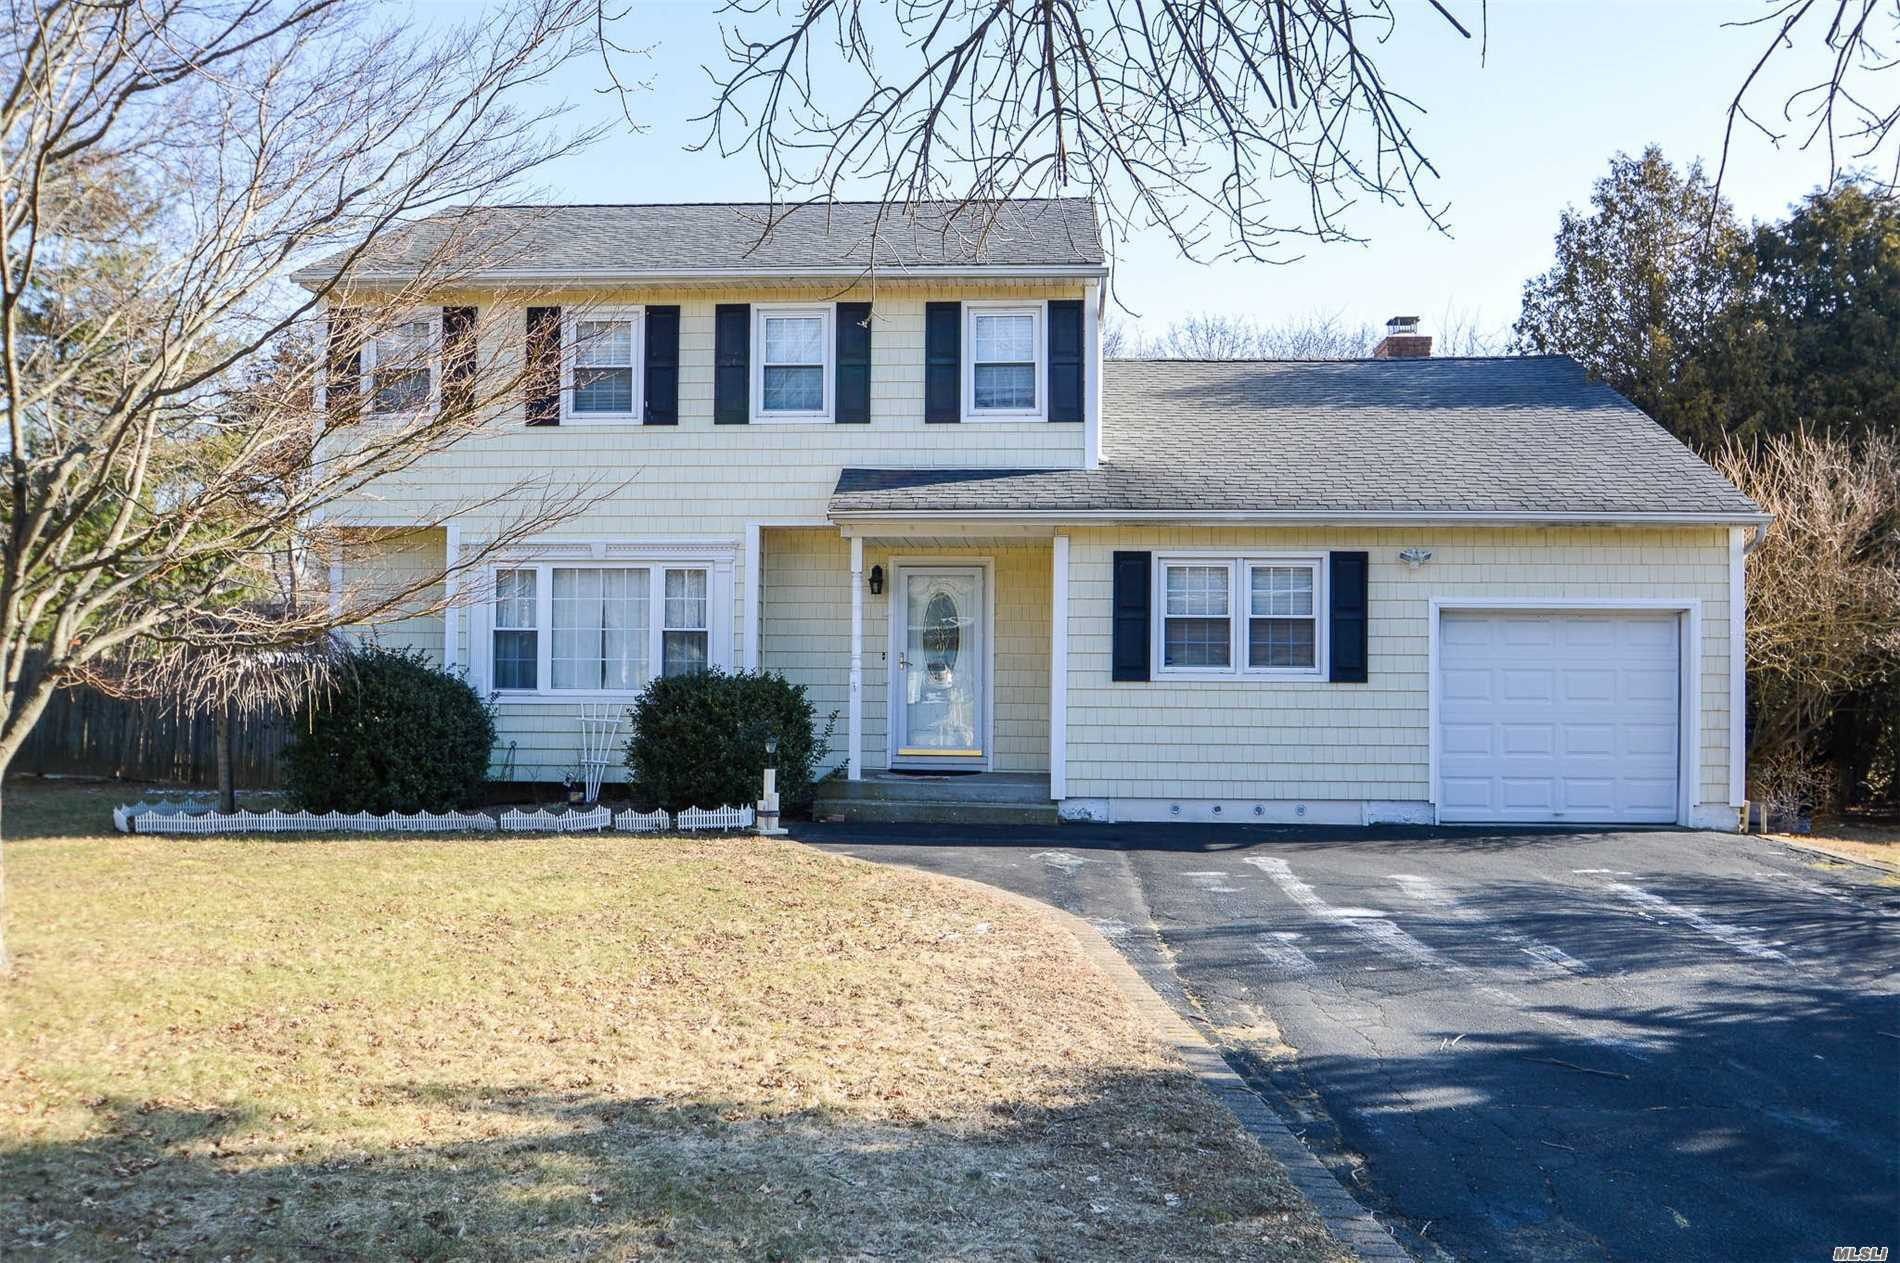 Lovely Center Hall Colonial, bright kitchen with new SS appliances and granite counters. Updated Underground Electrical Service And New Burner. Open Breakfast Nook Looking Out To A Private Fenced In 1/2 Acre Of Property With Great Deck For Entertaining.